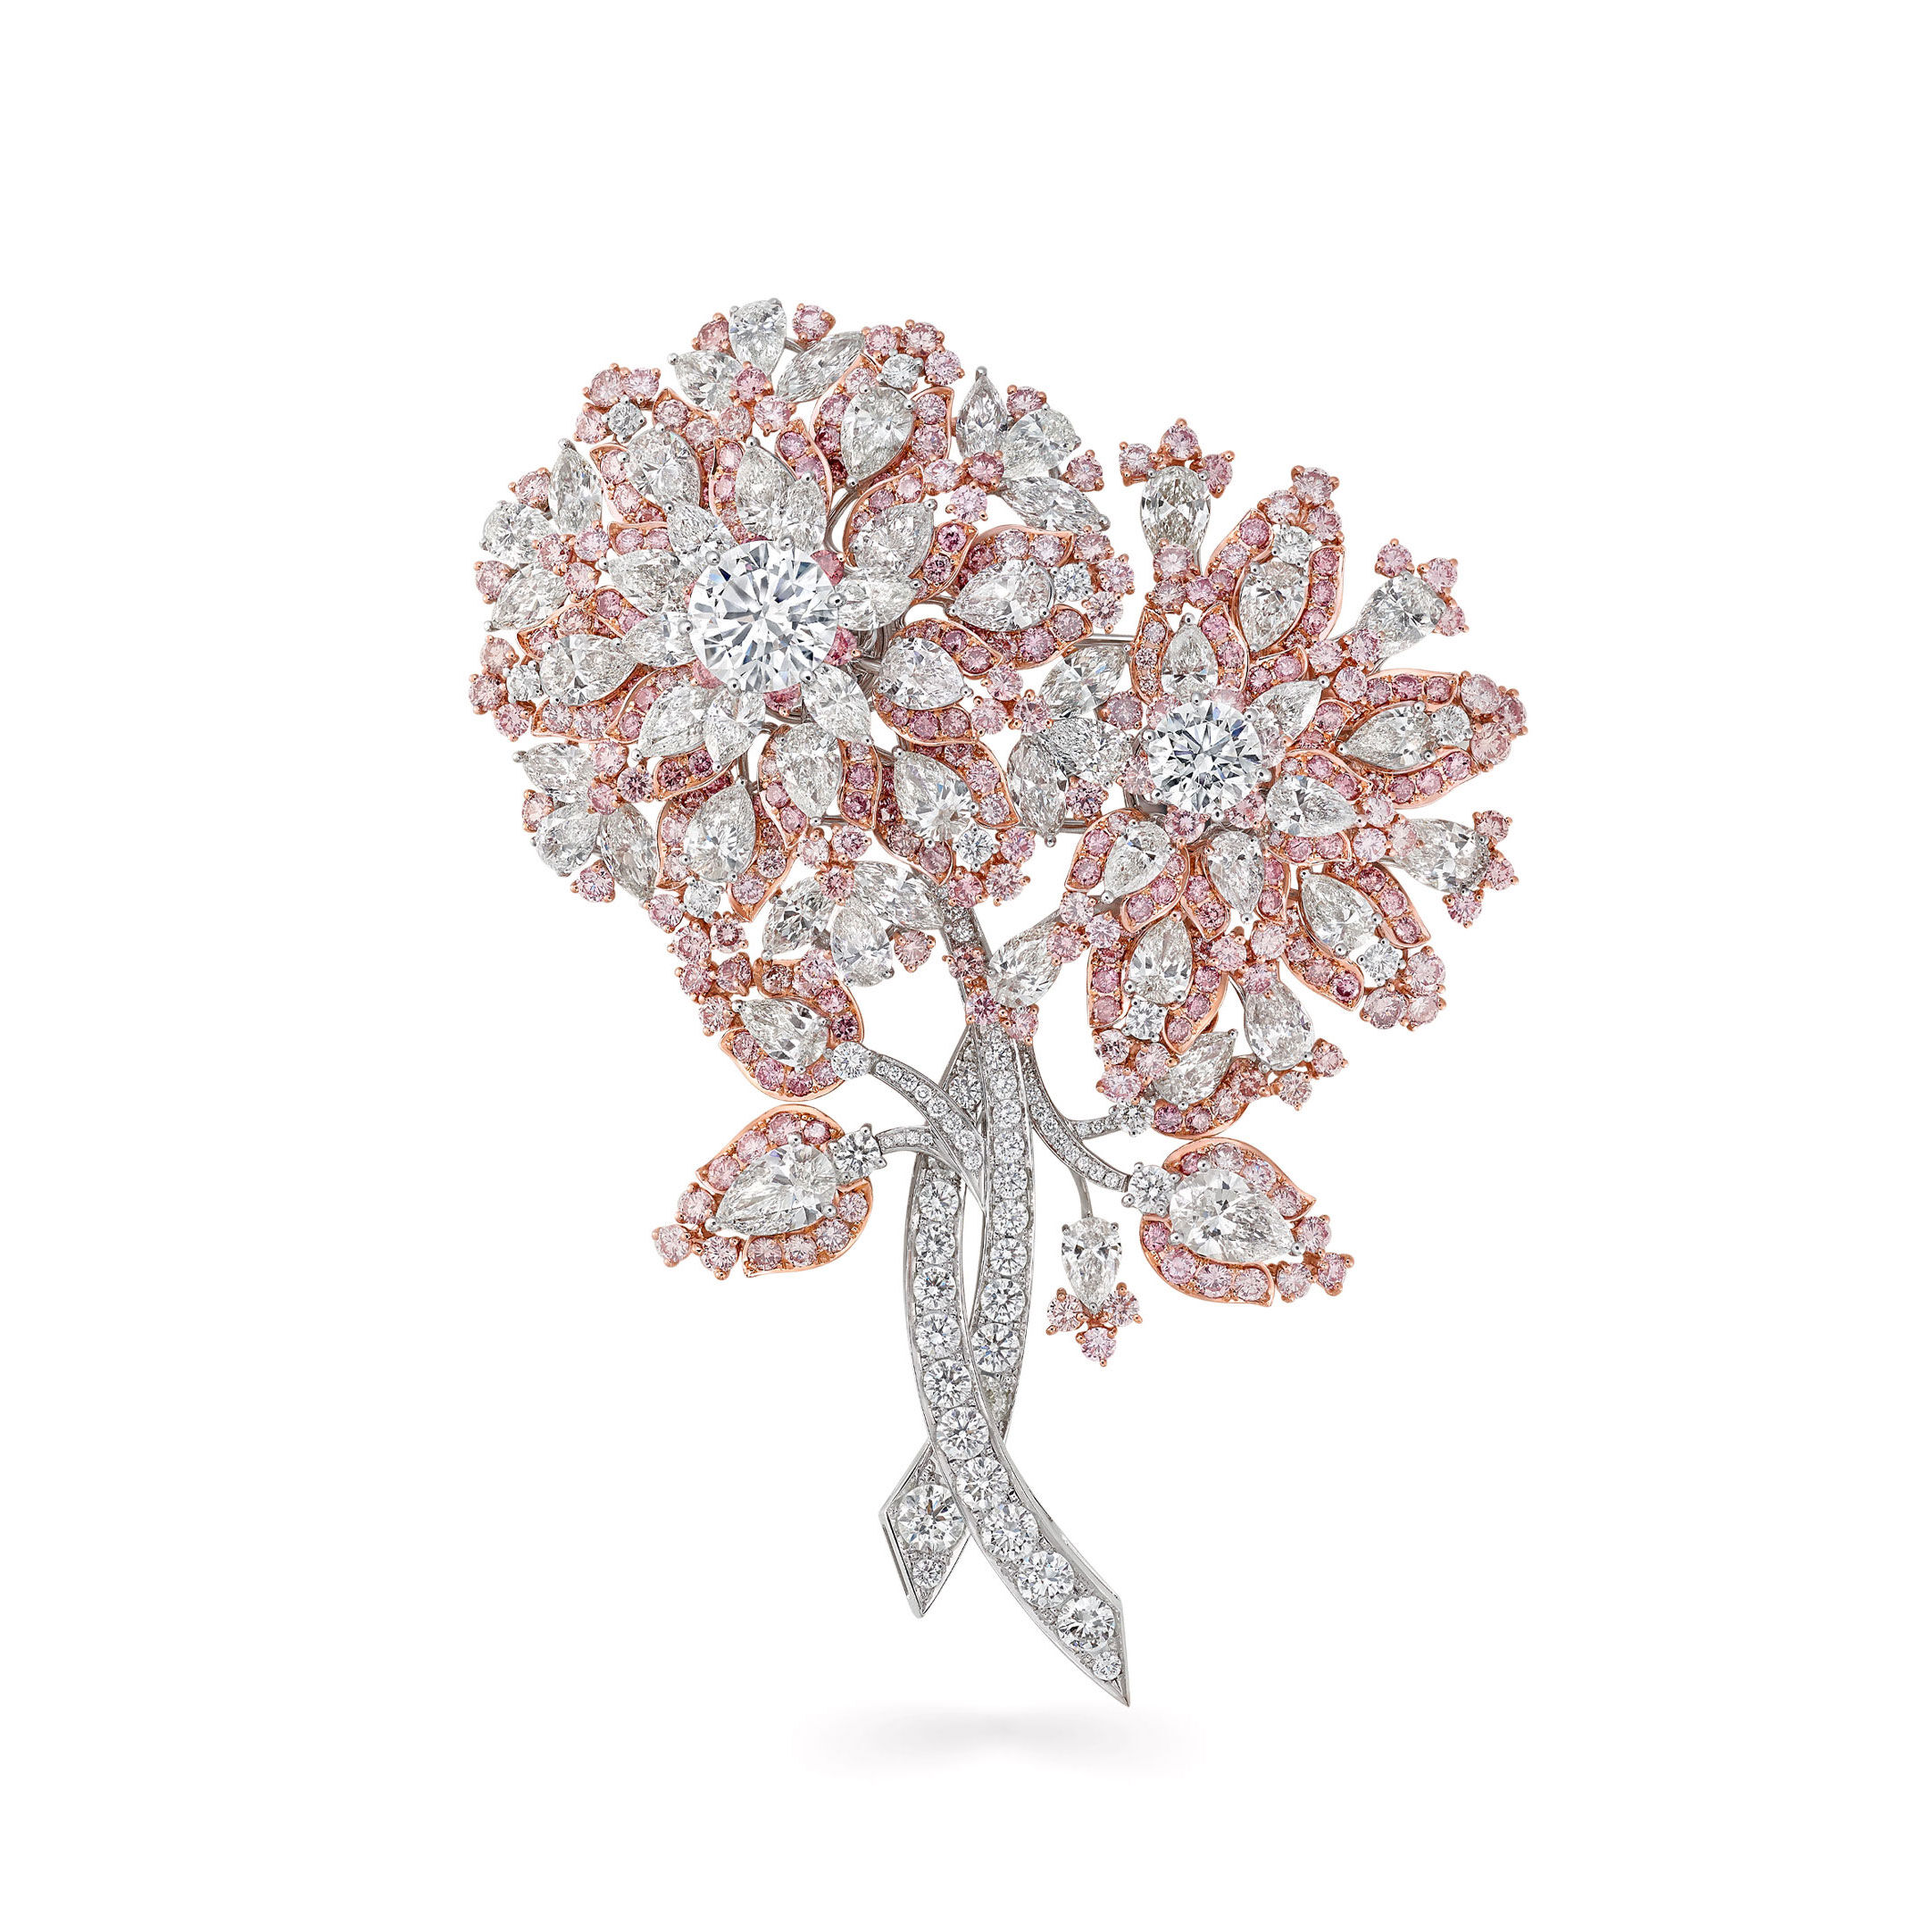 a Graff pink and white diamond high jewellery brooch